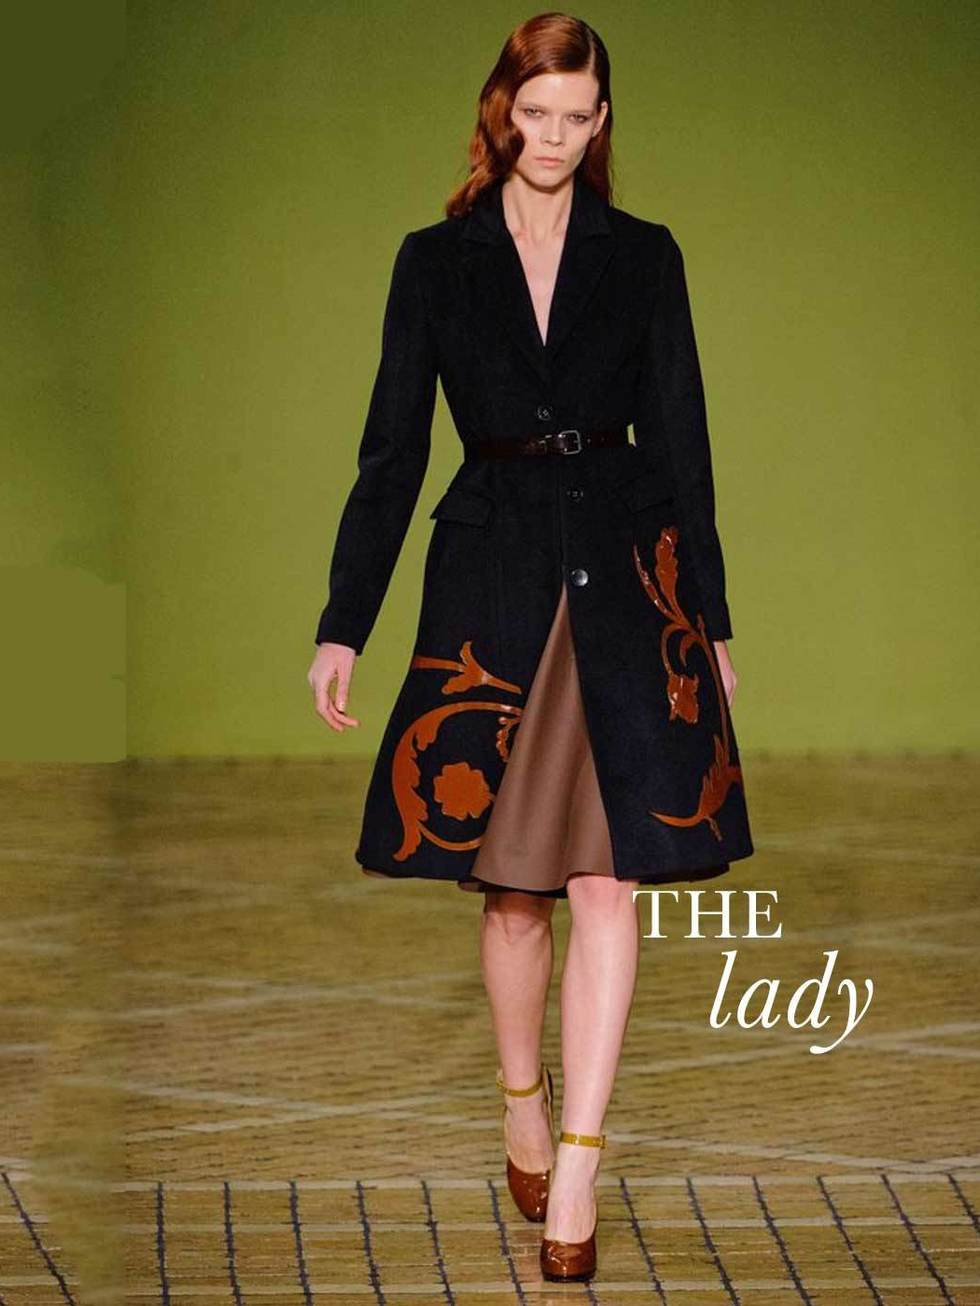 Fall winter 2013 fashion trends for women - Fall Winter 2013 Fashion Trends For Women 55